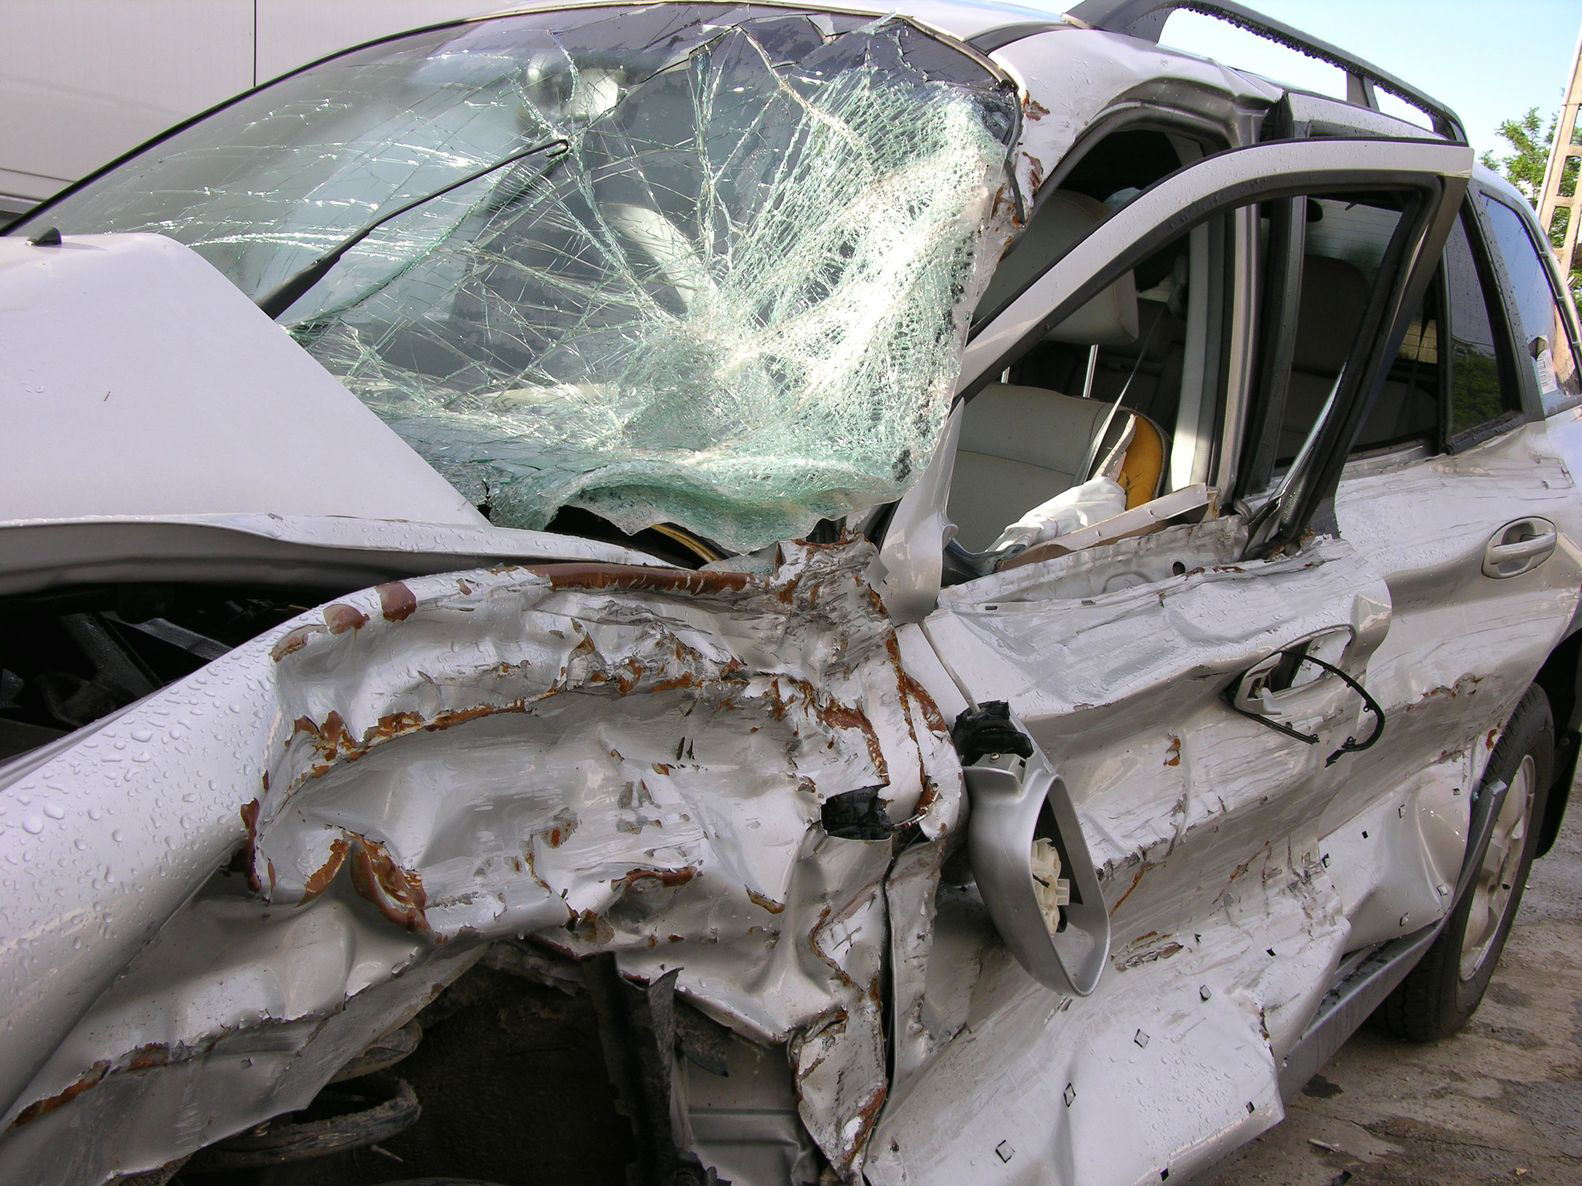 Fatal Auto/Pedestrian Accidents Continue to Rise in Texas